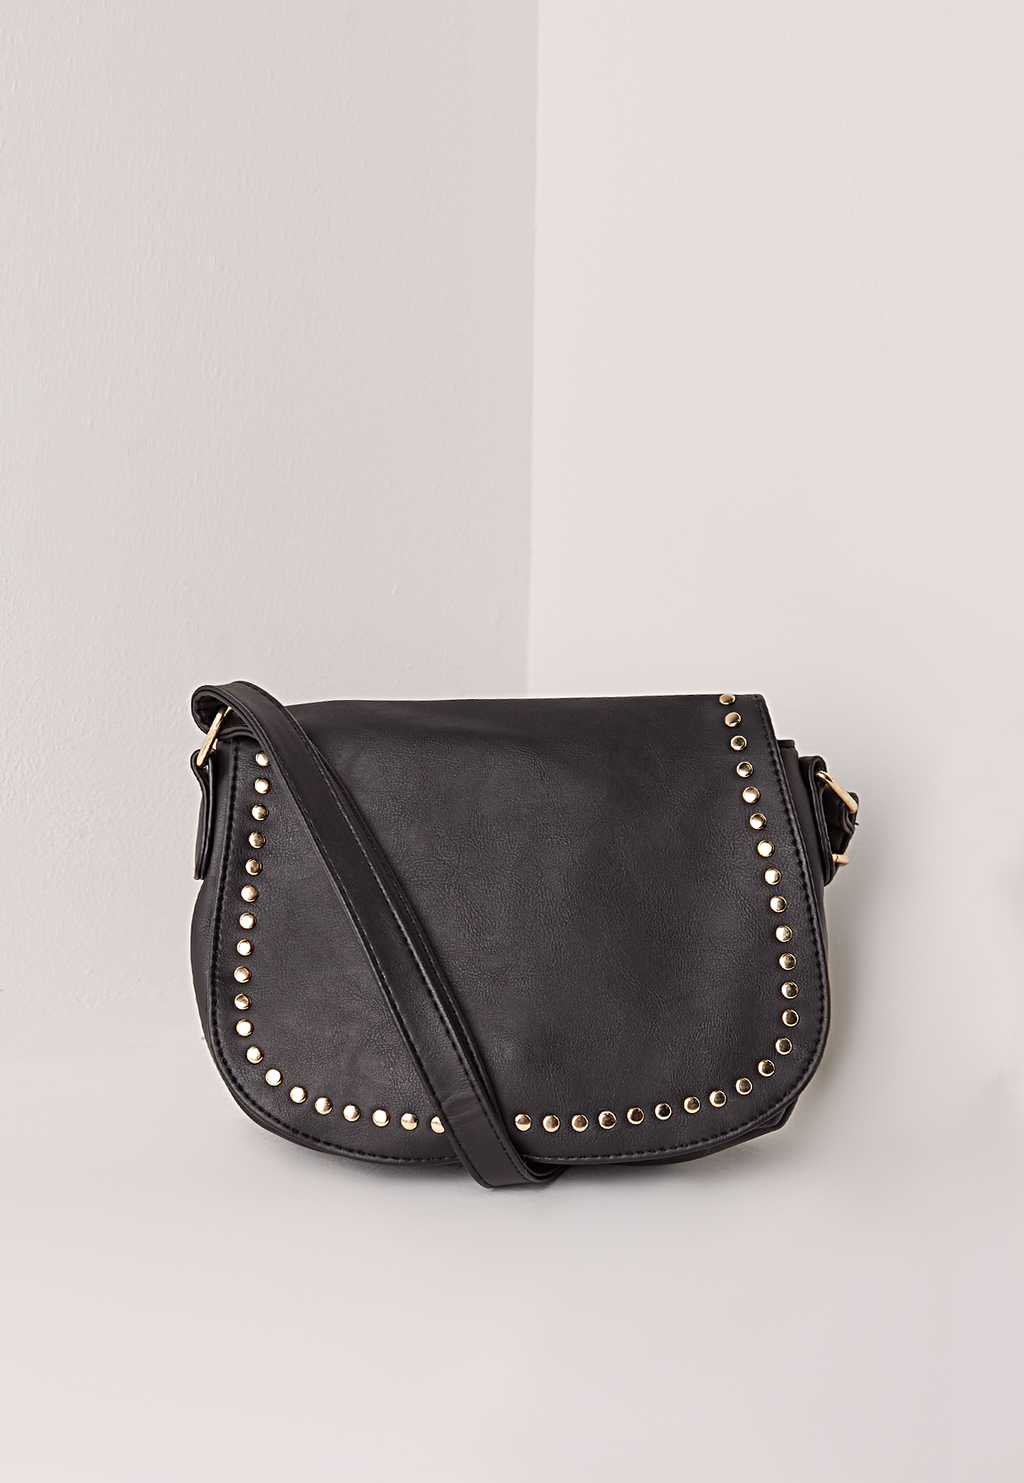 Studded Saddle Bag, Black - secondary colour: gold; predominant colour: black; occasions: casual, creative work; type of pattern: standard; style: saddle; length: across body/long; size: standard; material: faux leather; embellishment: studs; pattern: plain; finish: plain; season: s/s 2016; wardrobe: highlight